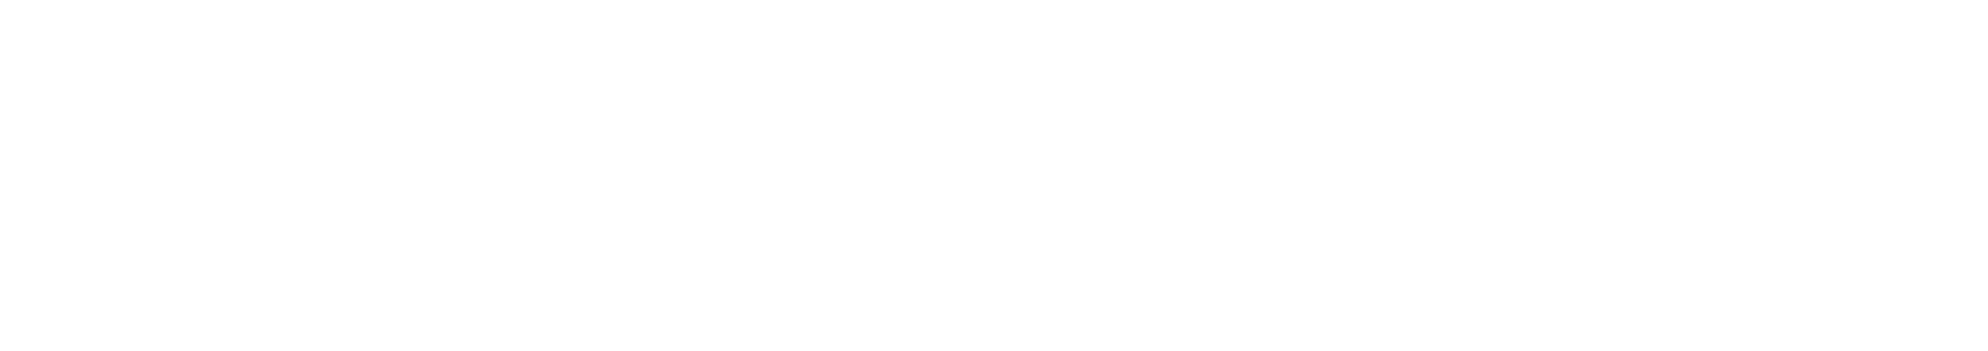 Facility Services Partners, Inc. (FSP)